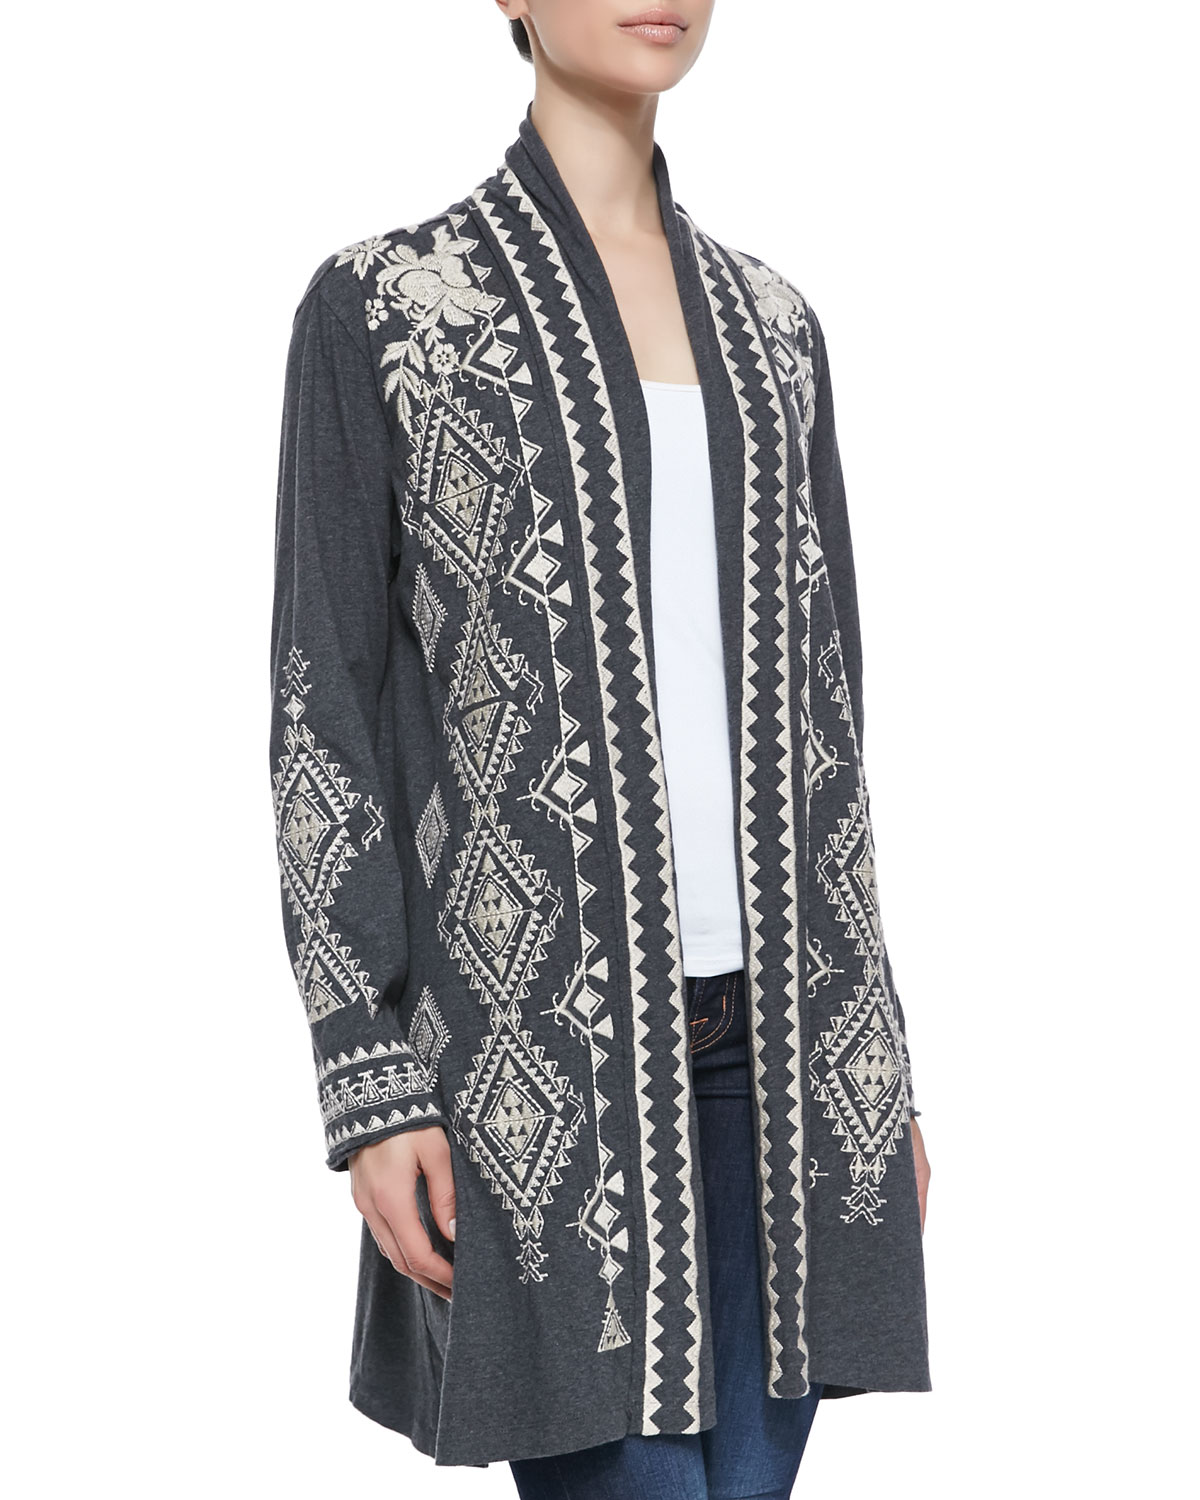 Tulia Embroidered Duster Cardigan, Size: LARGE (12), BLACK - JWLA for Johnny Was